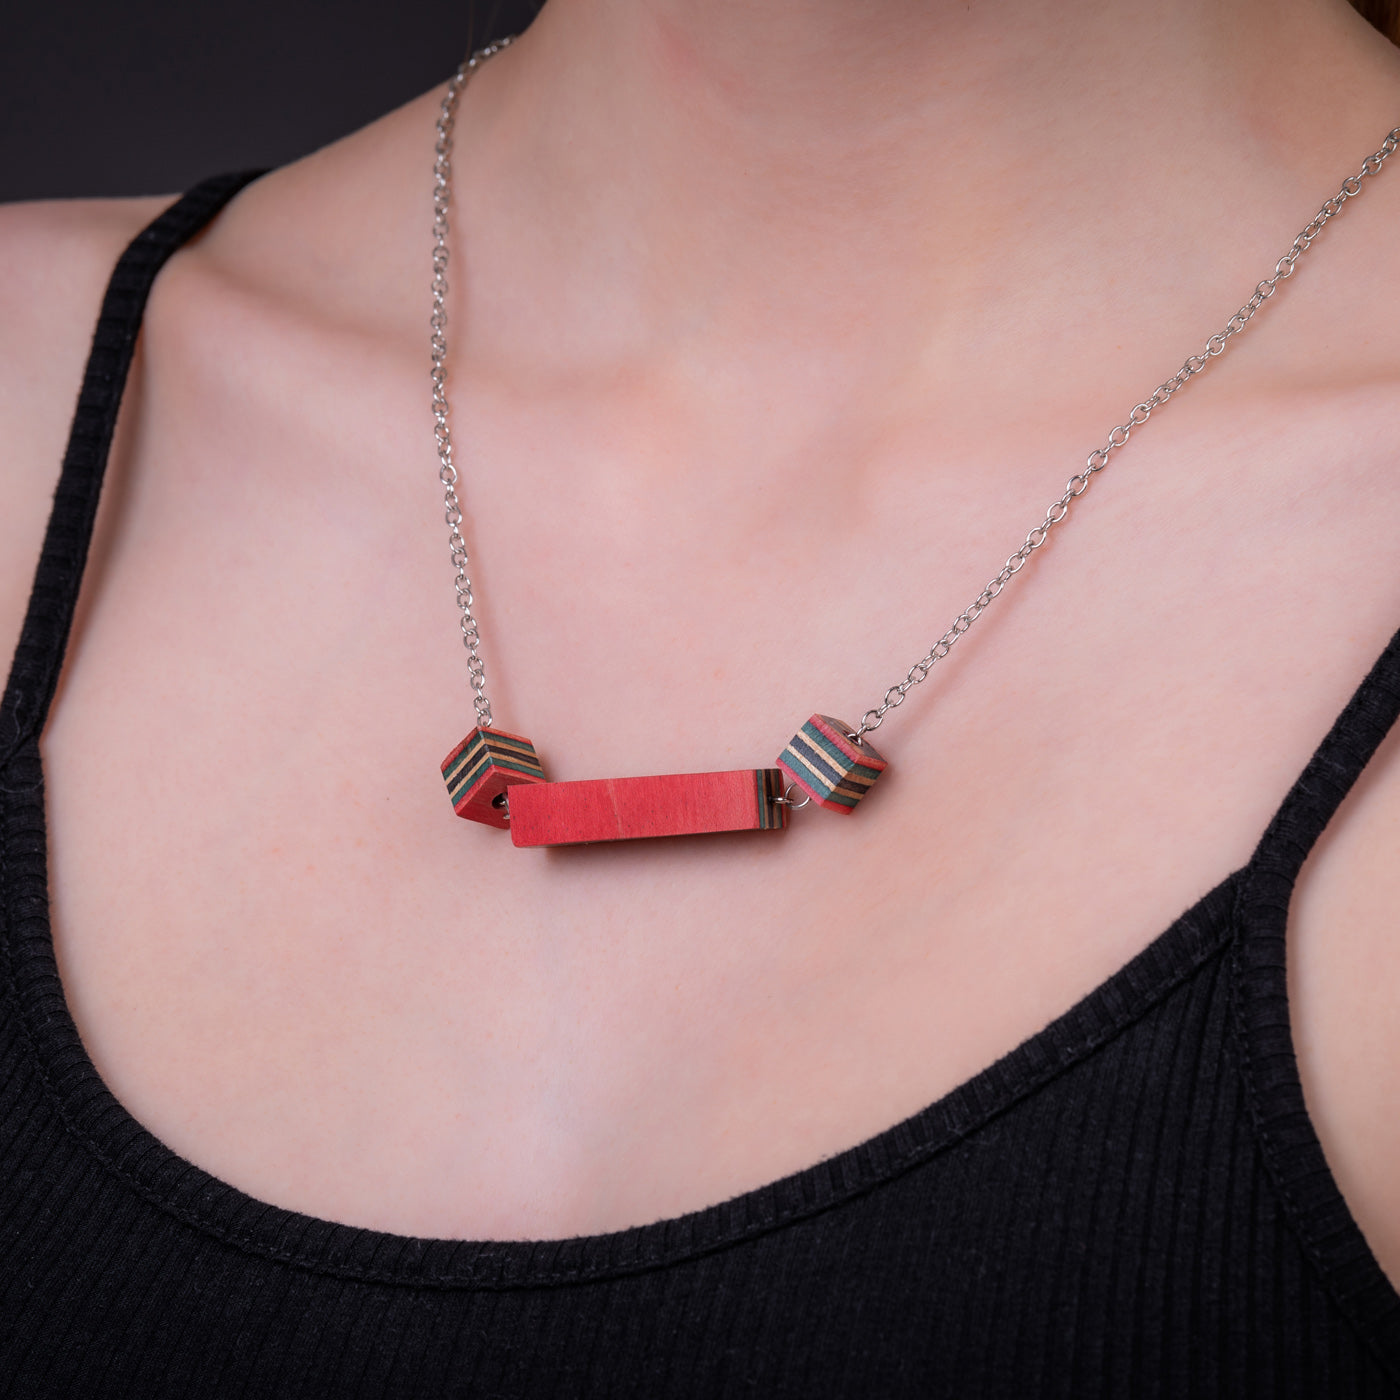 Recta Recycled Skateboard Necklace